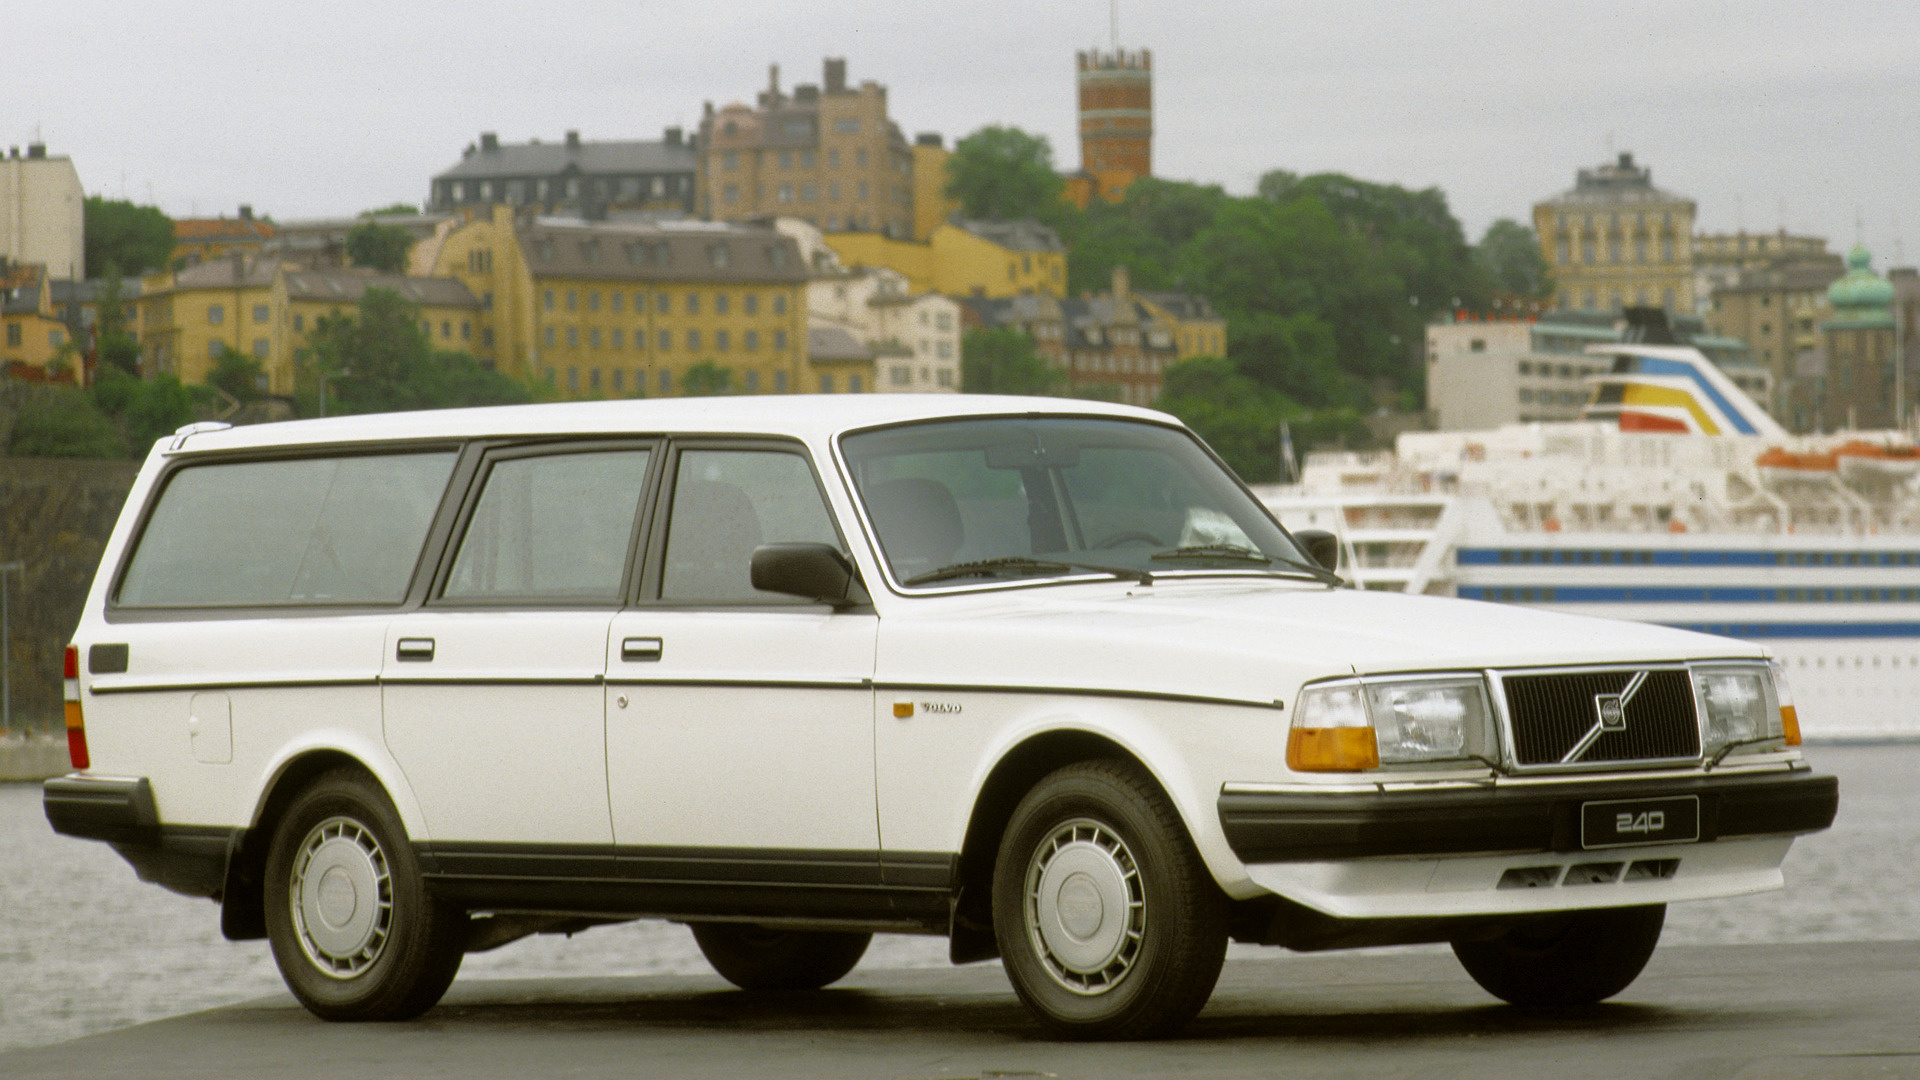 Volvo 240 GL Kombi (1987) Wallpapers and HD Images - Car Pixel